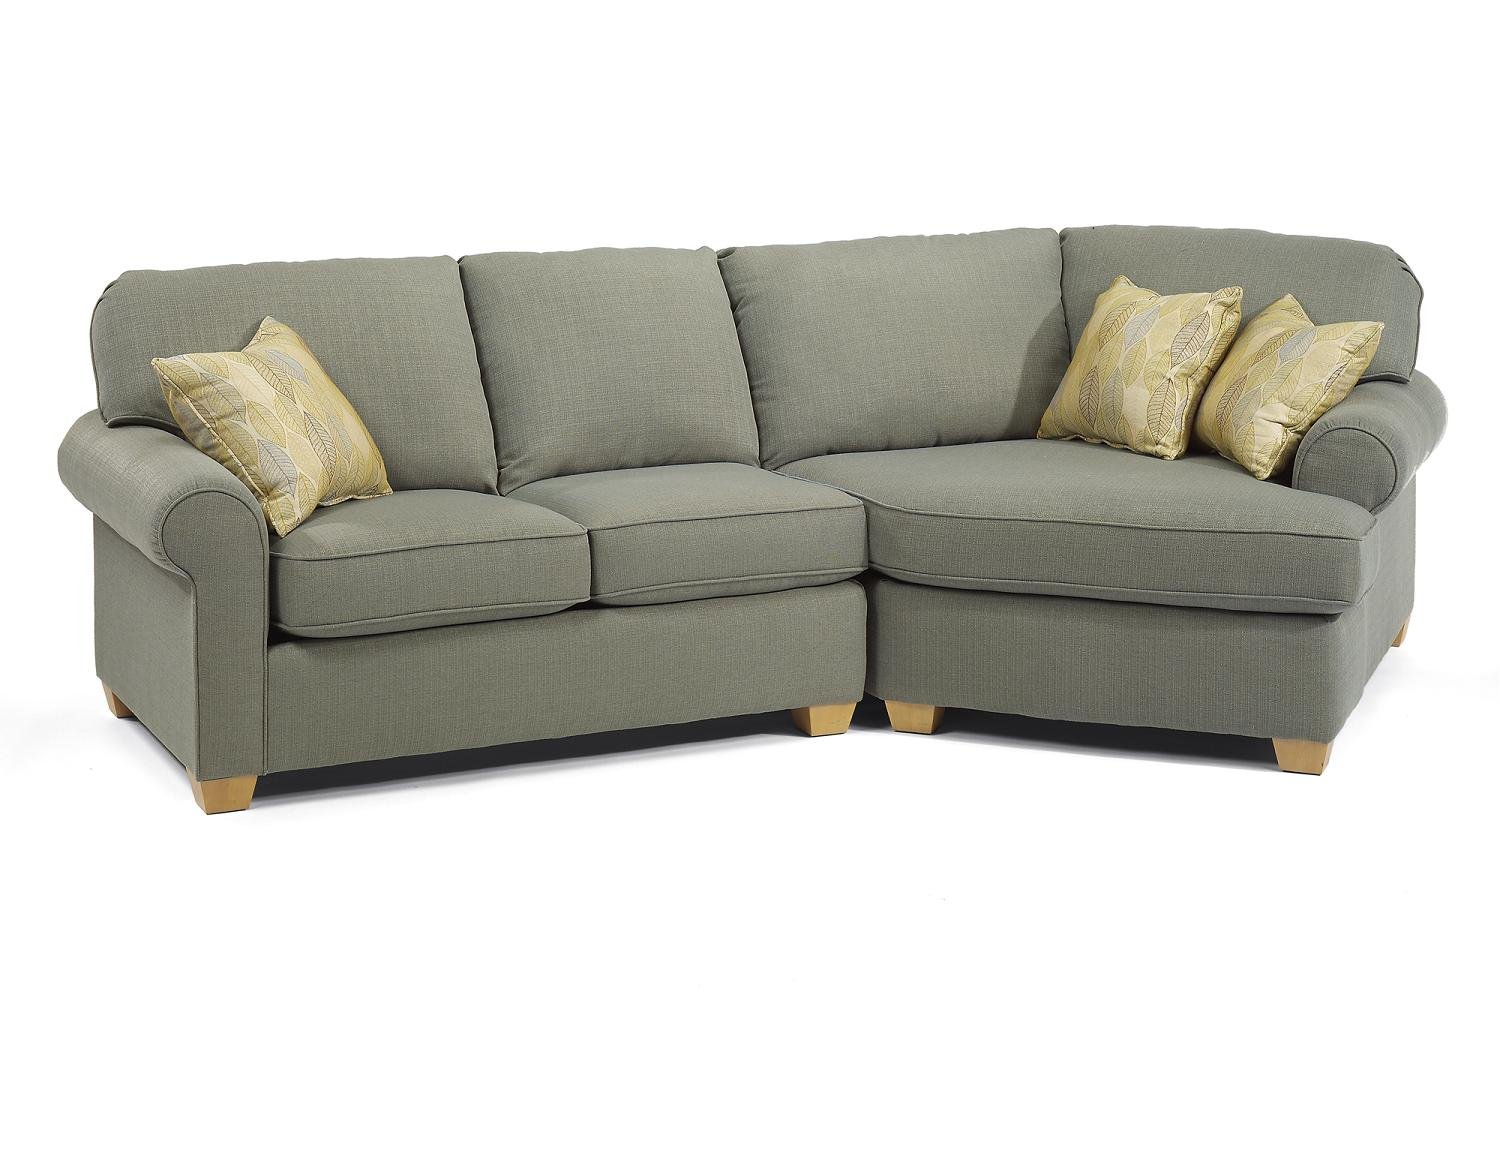 couch with wide chaise